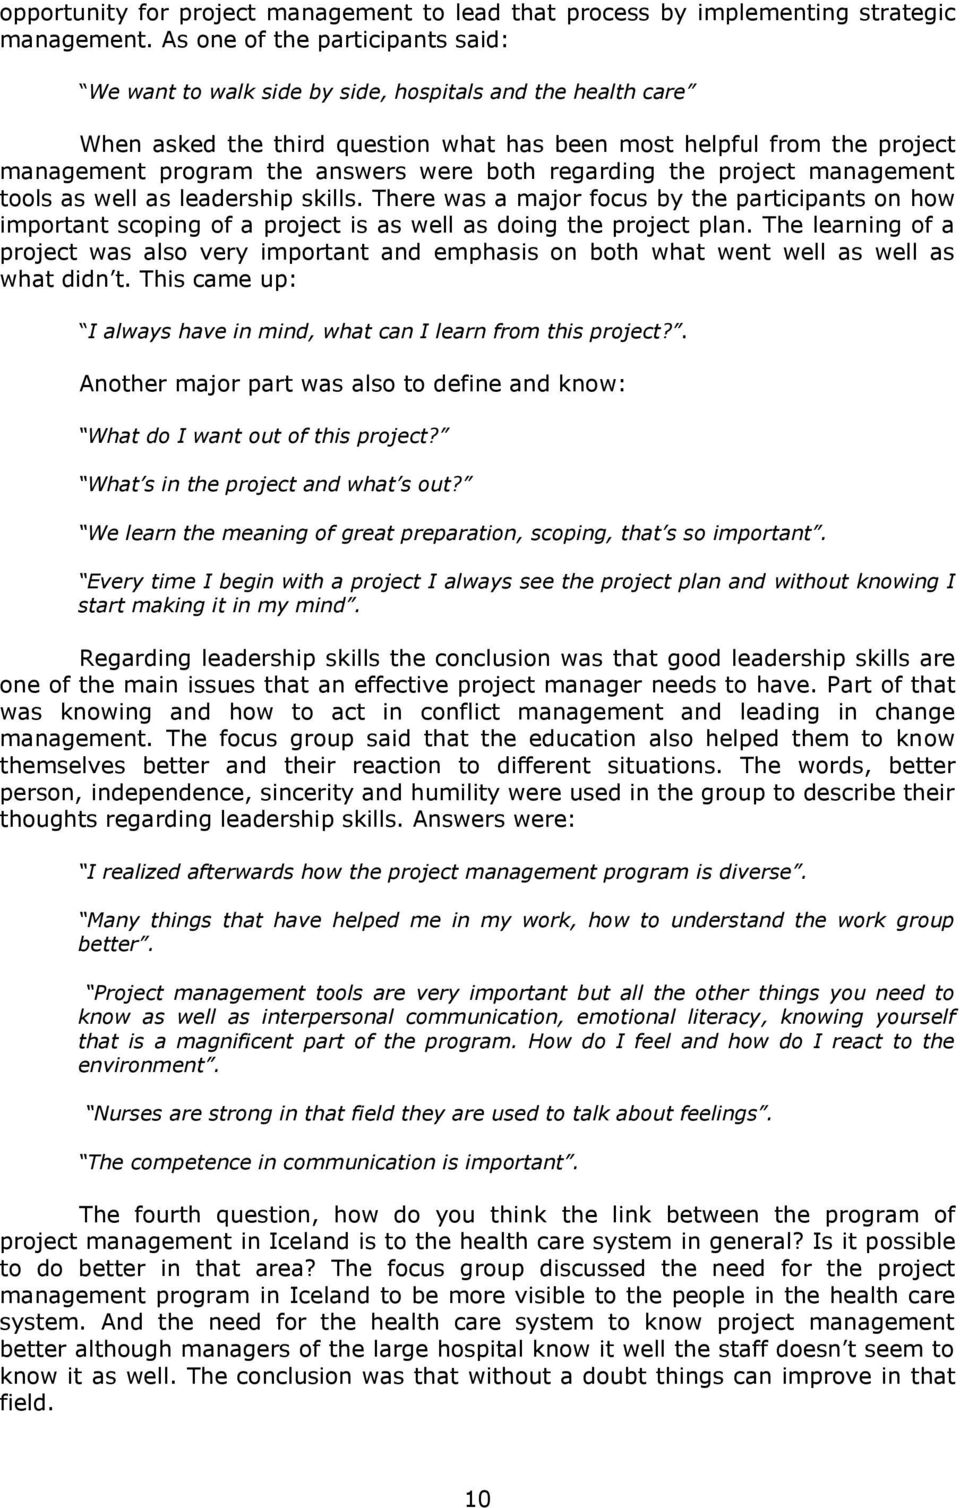 Is Project Management The Future Approach To Clinical Nursing Eln